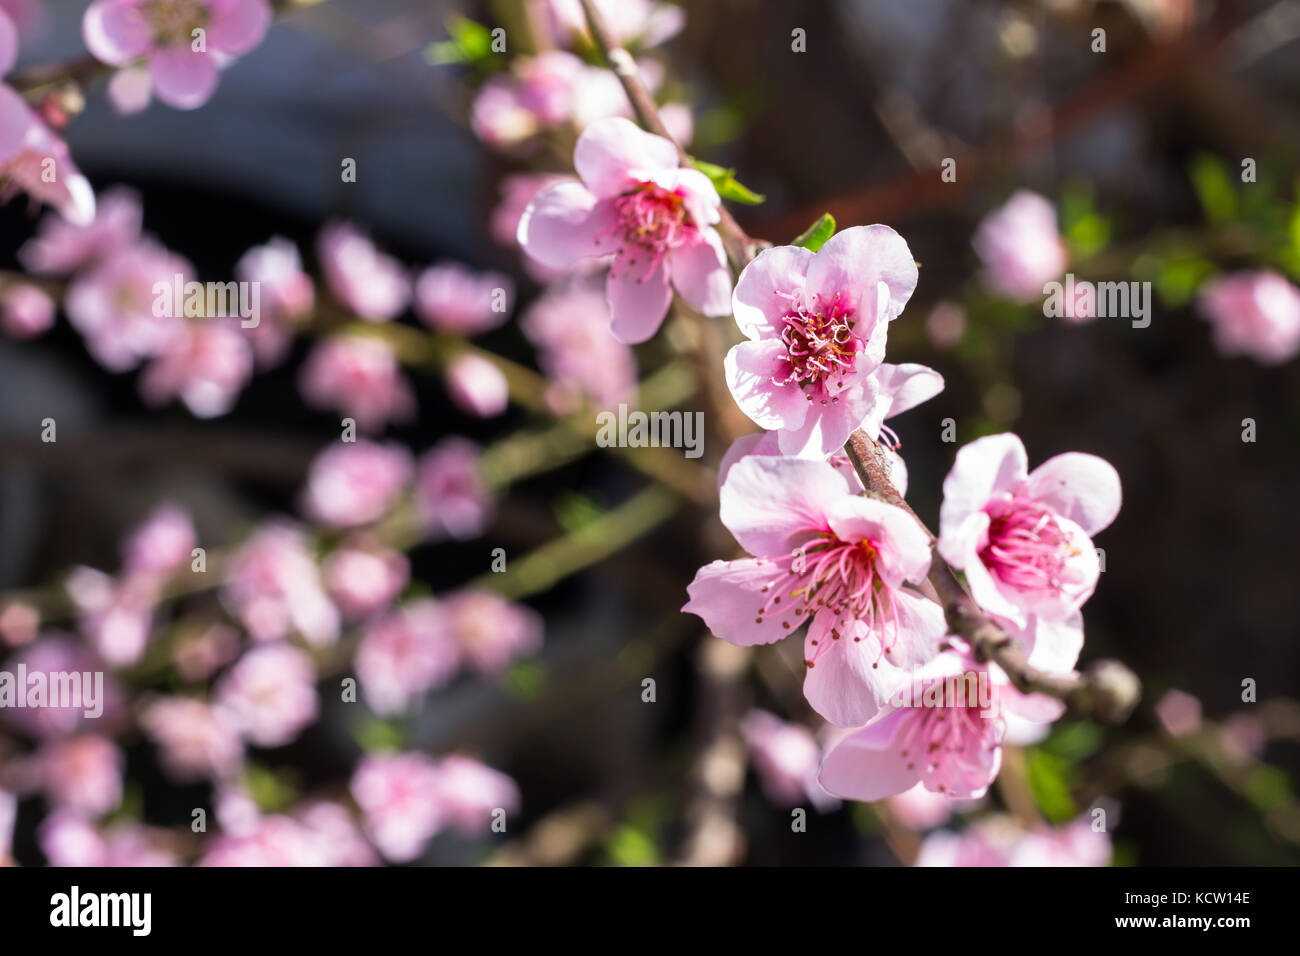 Pink peach blossoms with blurred background - Stock Image